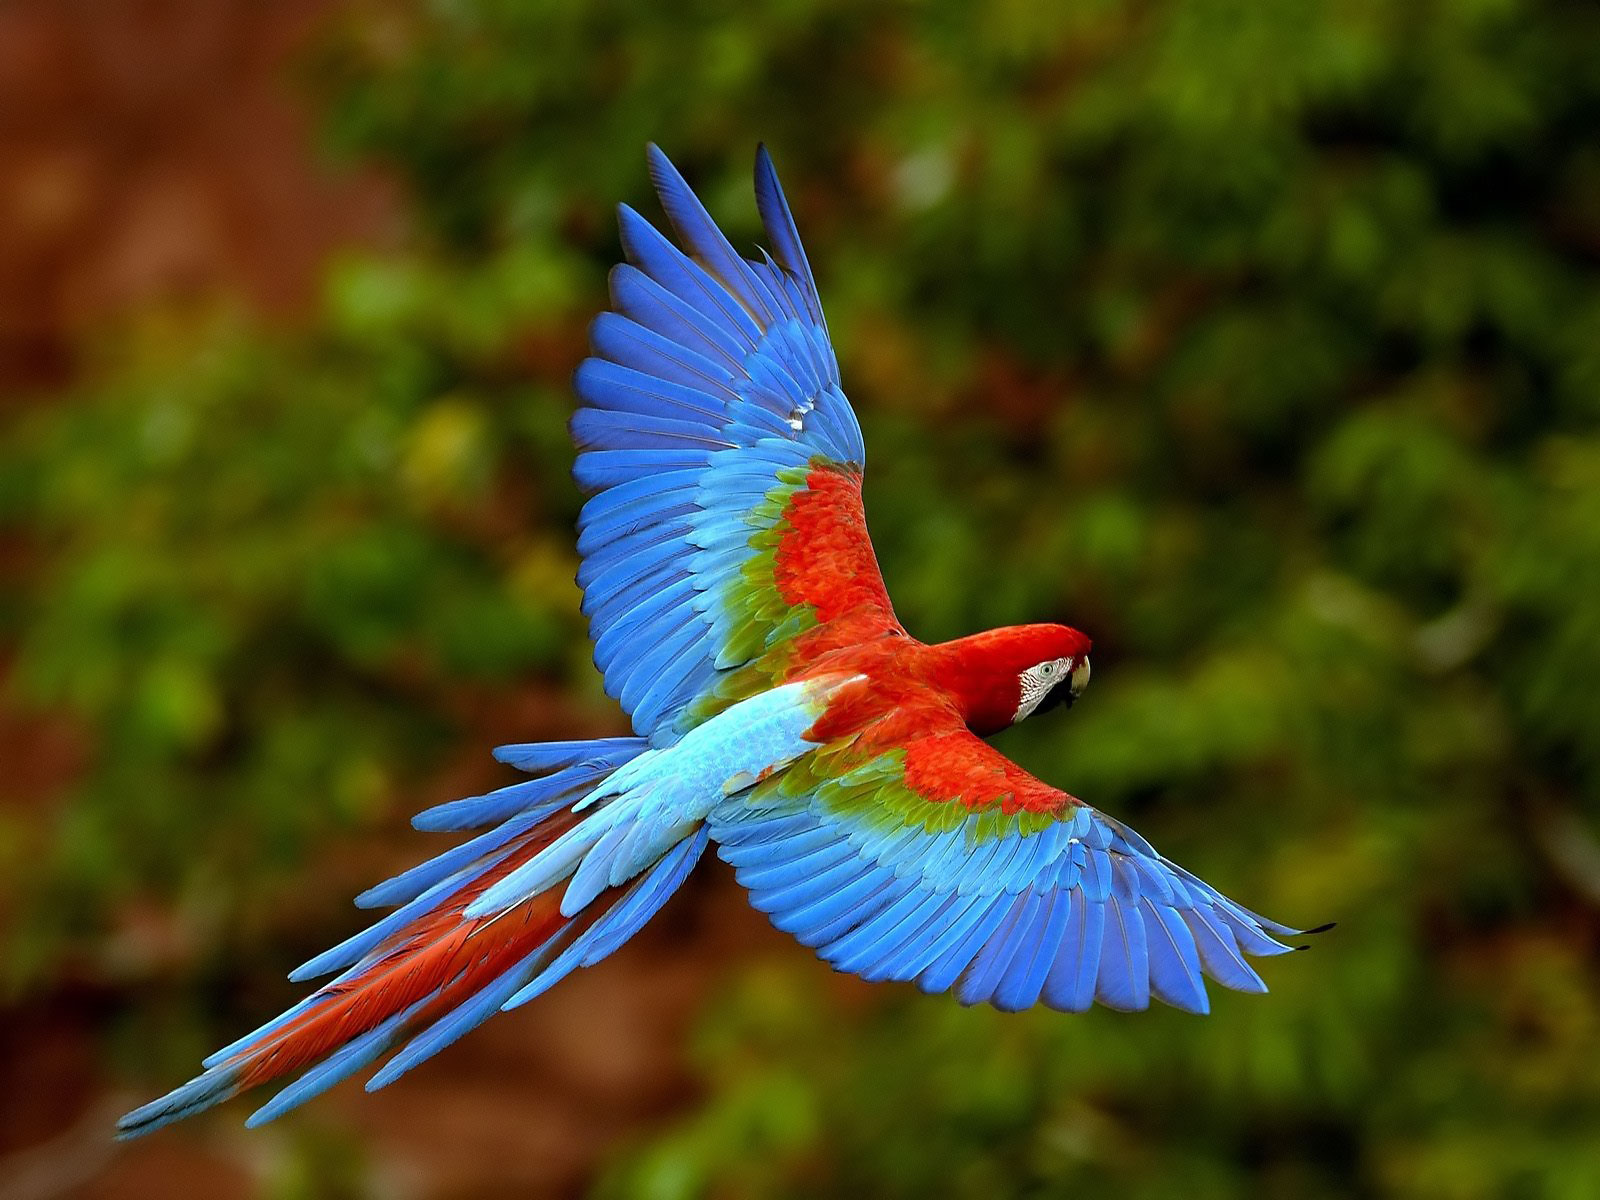 All Wallpapers Parrot Hd Wallpapers 1 1600x1200